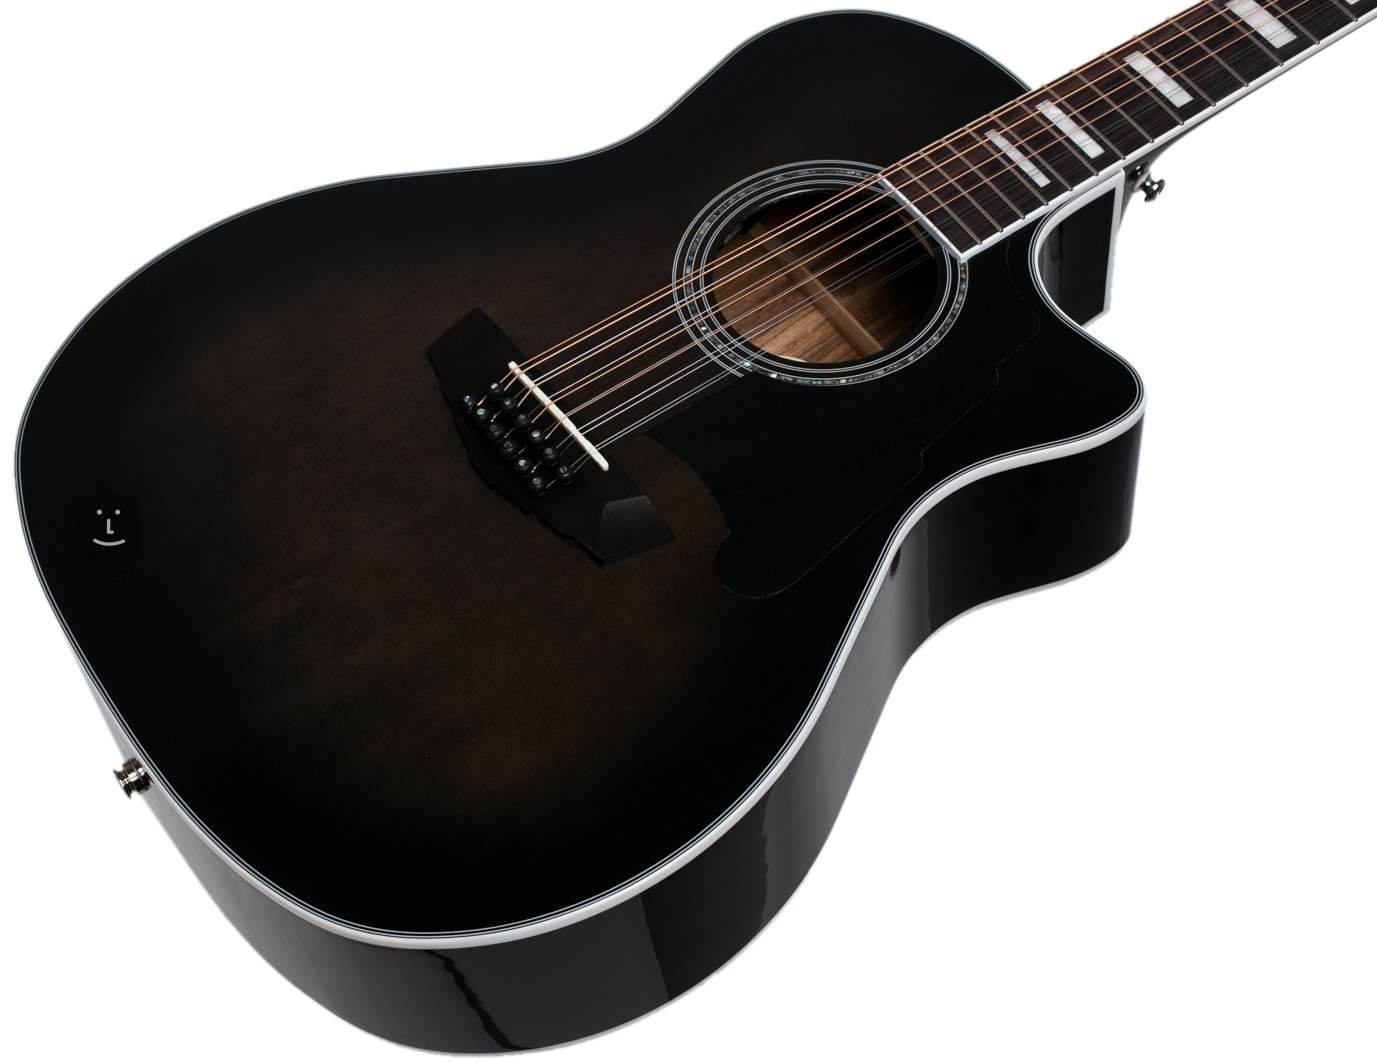 D/'Angelico Premier Fulton 12-String Acoustic-Electric Guitar Grey Black